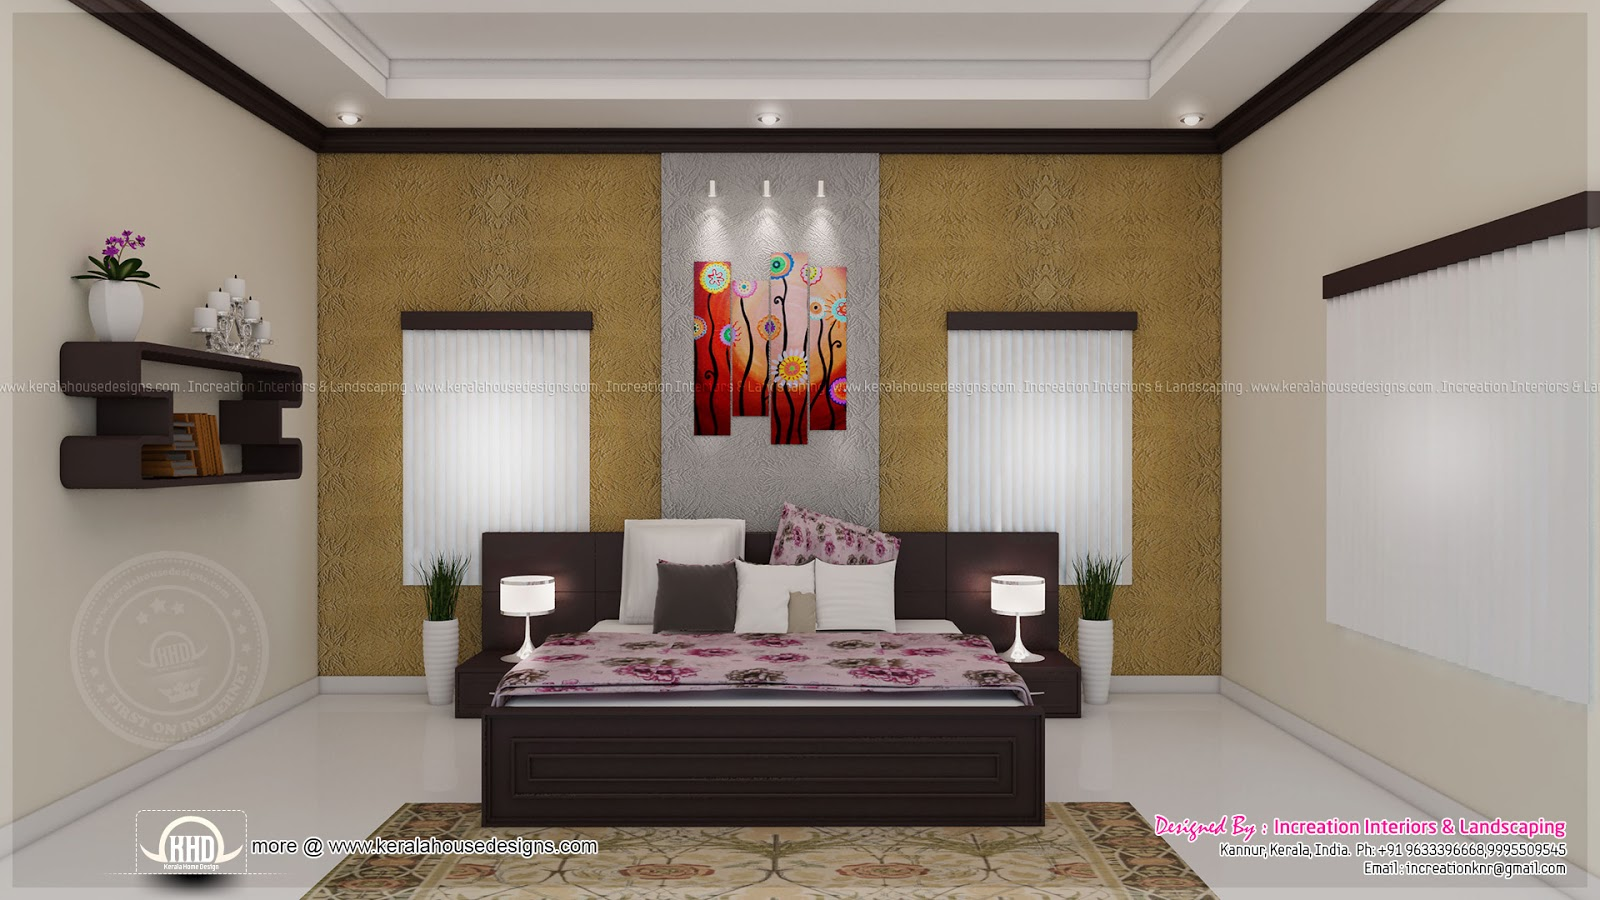 House interior ideas in 3d rendering kerala home design for Interior designs of the house